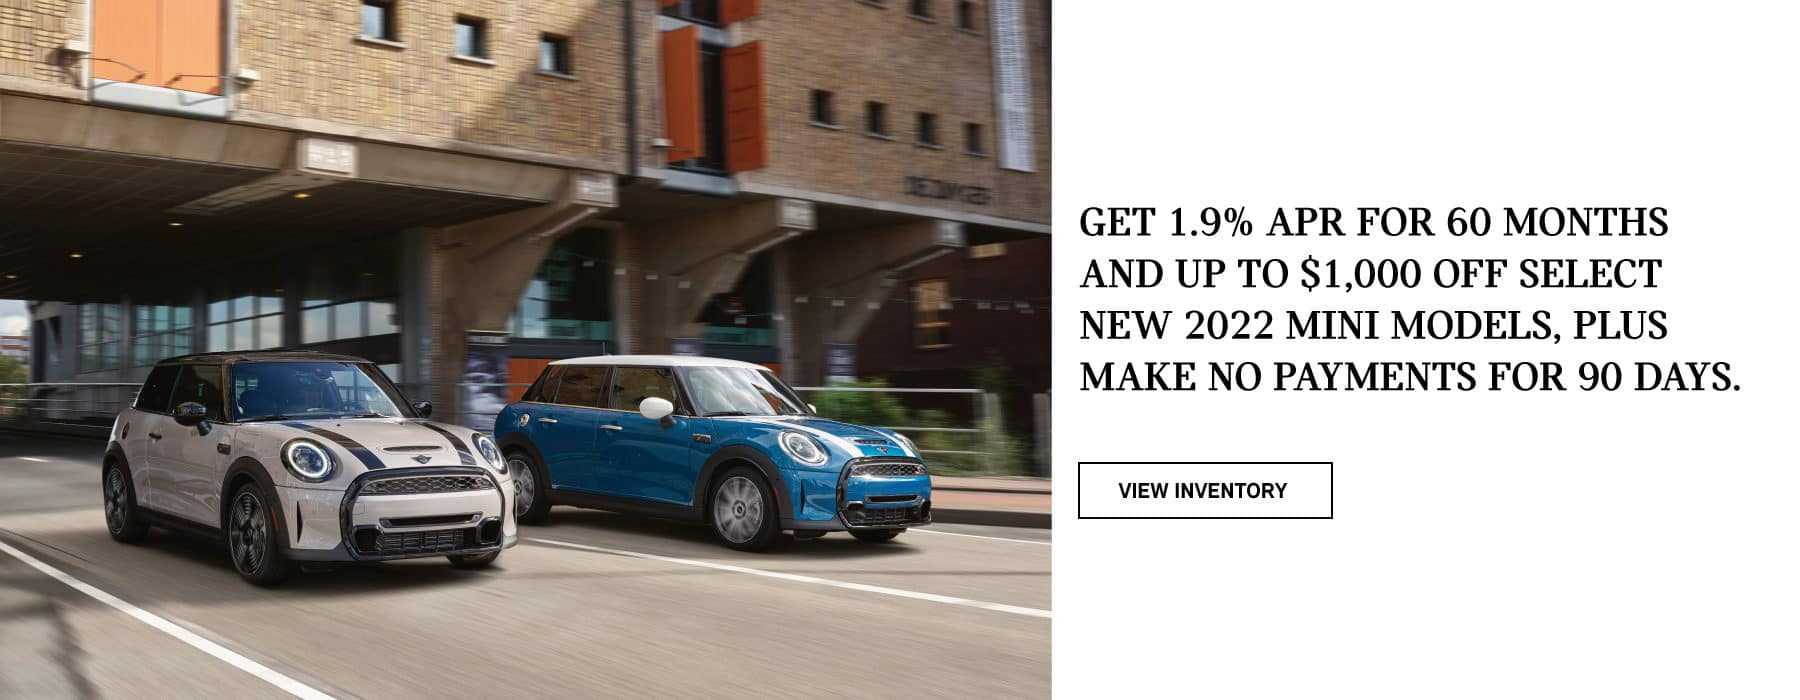 Get 1.9% APR for 60 months and up to $1,000 off select new 2022 MINI models, plus make no payments for 90 days. Valid through 06/30/21. Click to view inventory. See dealer for full details. Image shows two 2022 MINI vehicles driving down the road in an urban area.